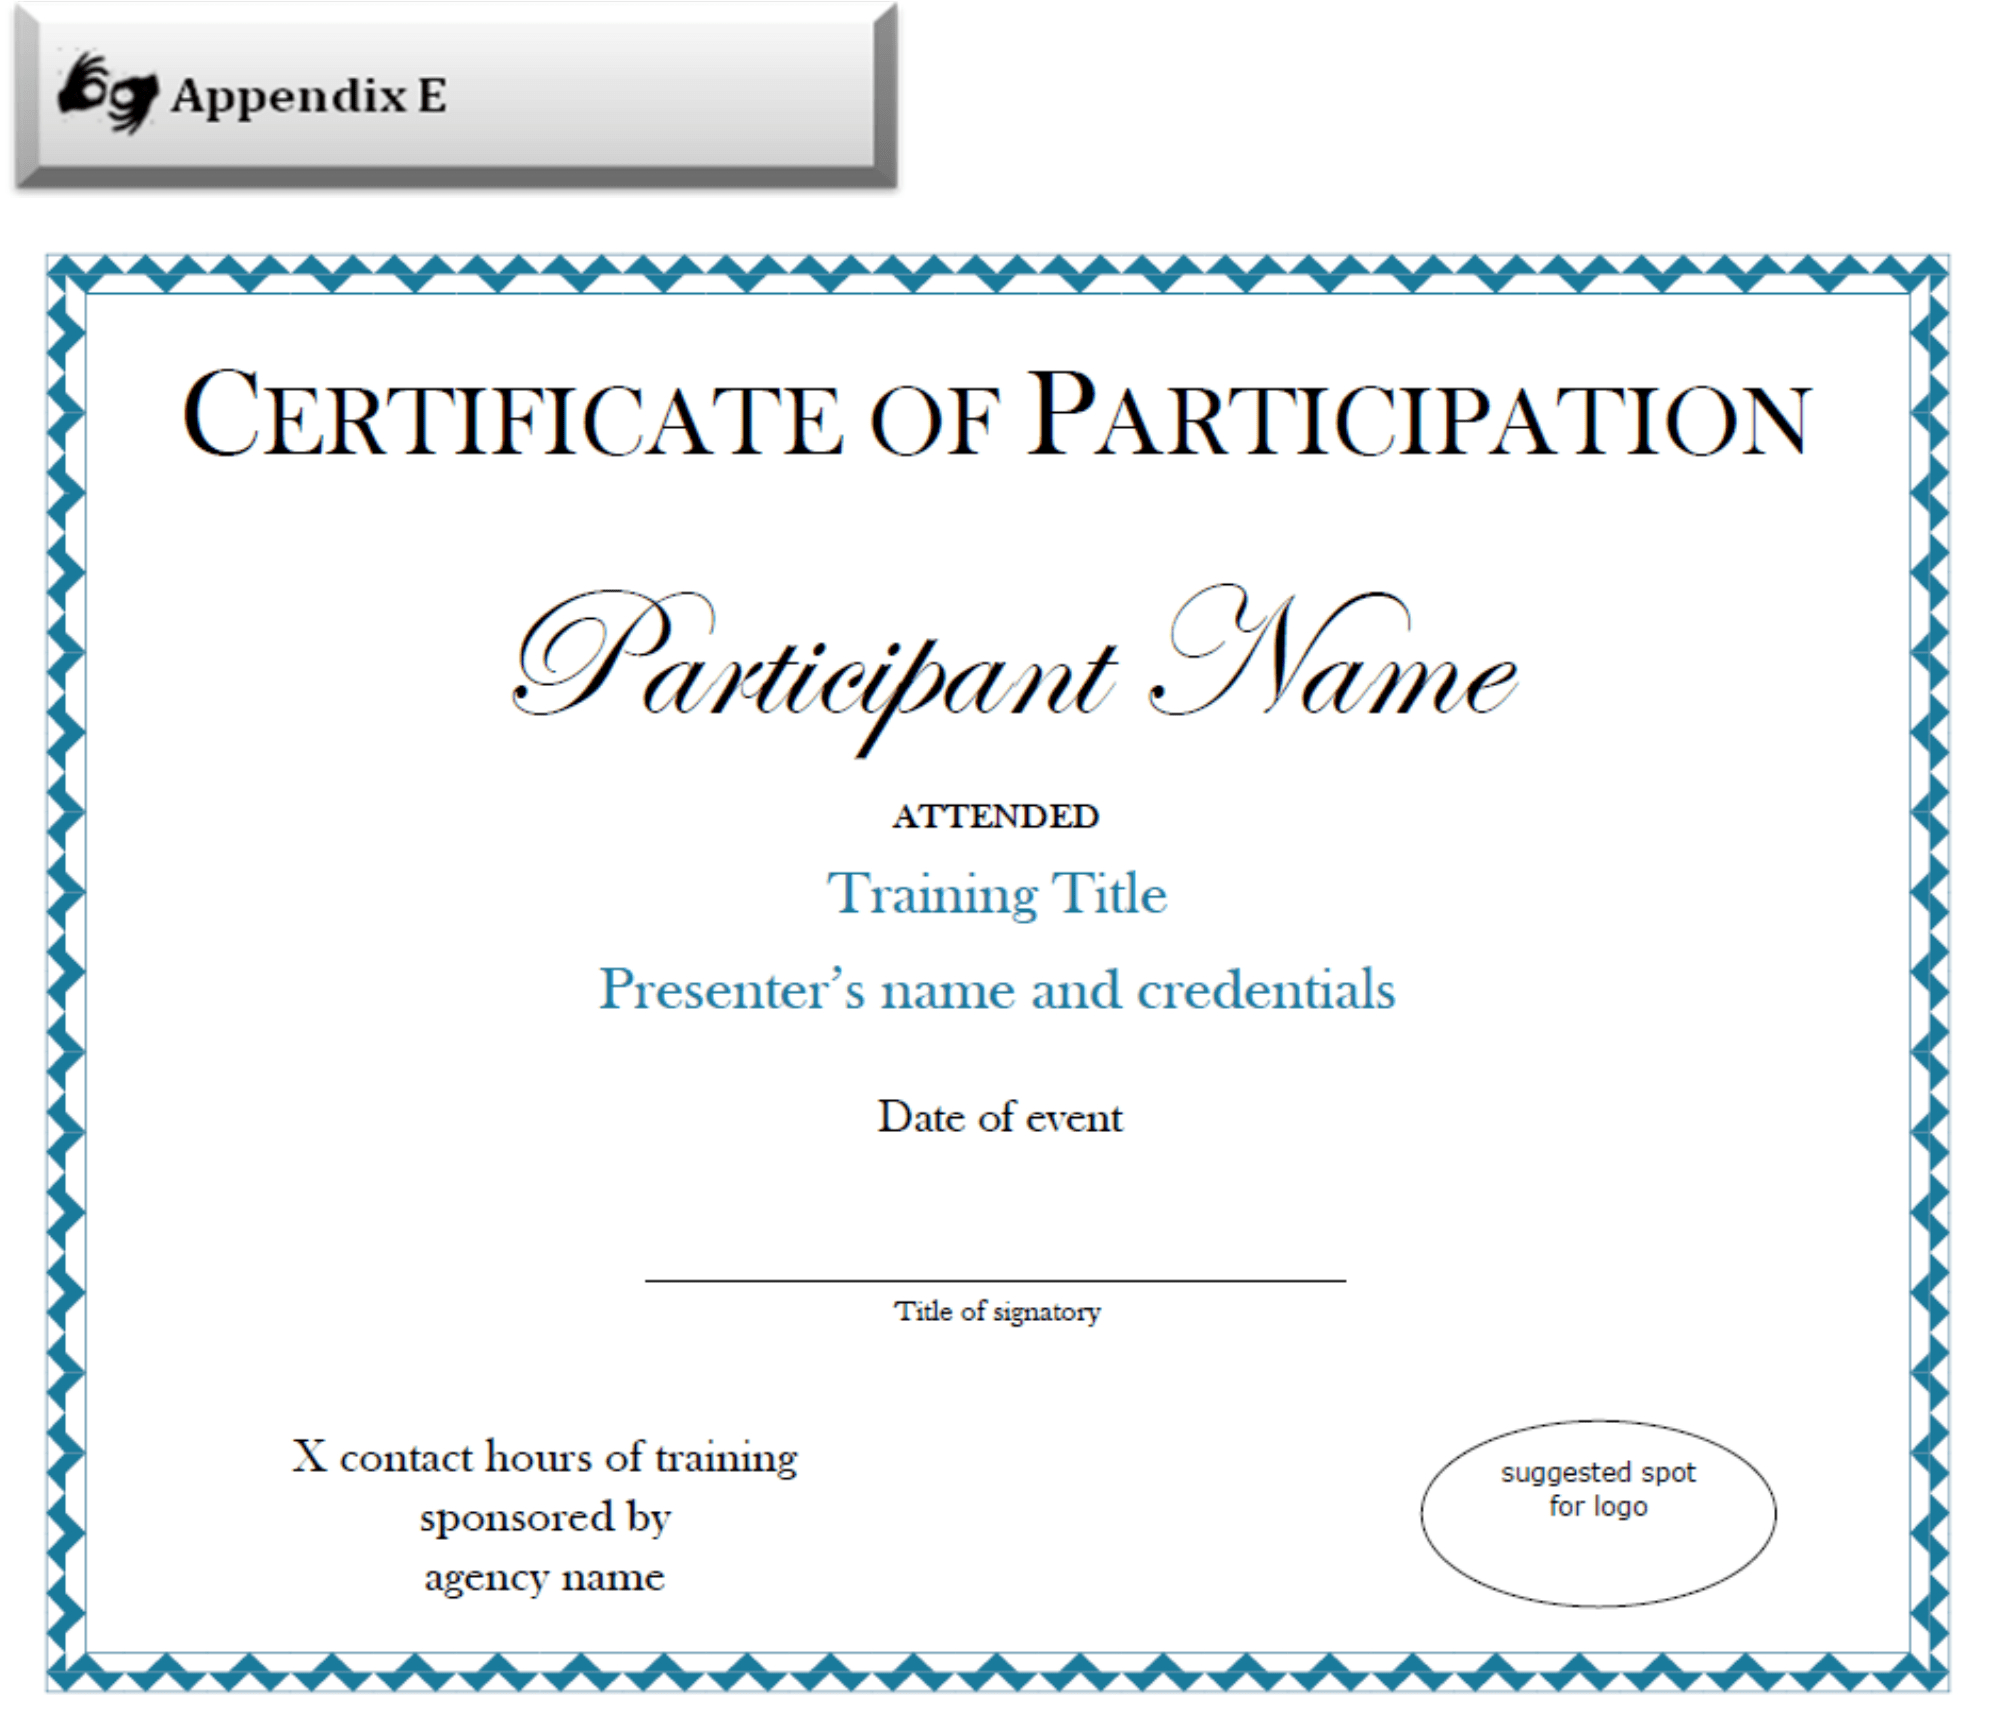 Participation Certificate Template Free Download   Sample Intended For Participation Certificate Templates Free Download